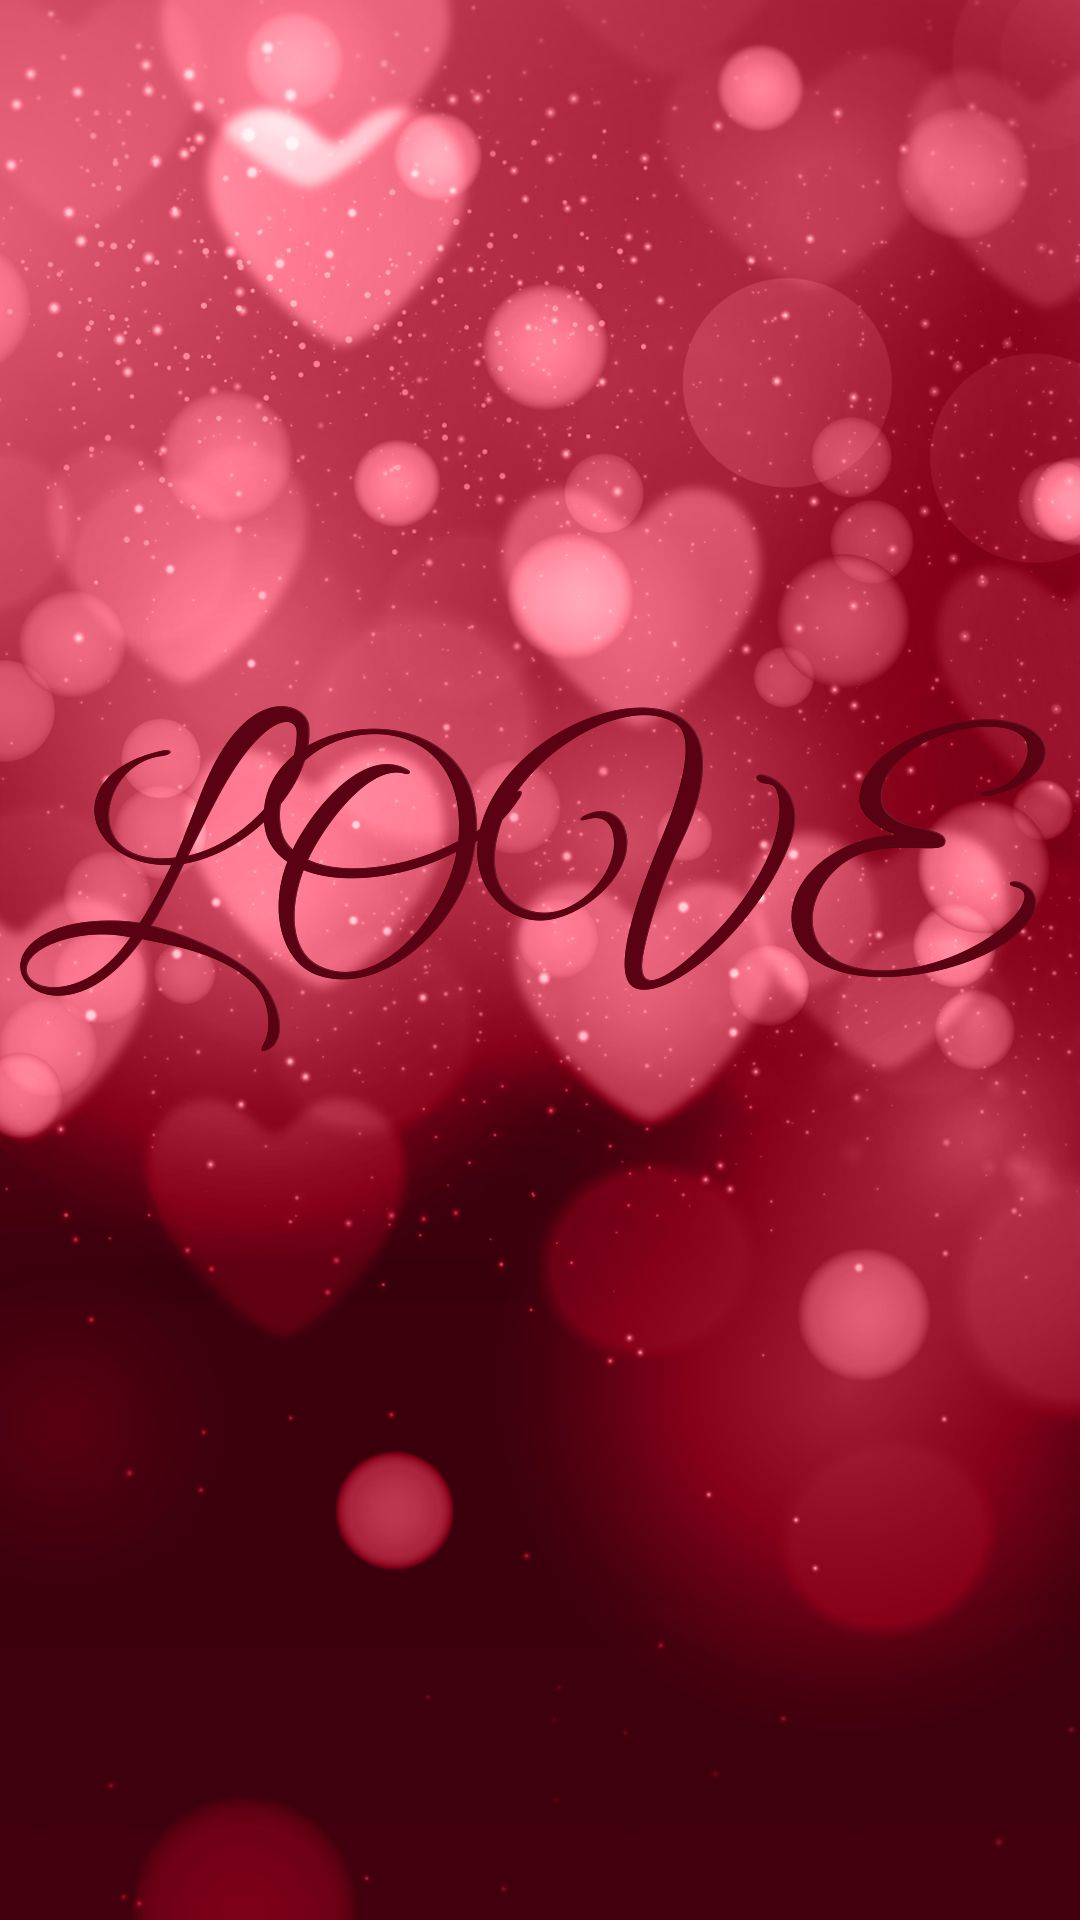 Love Iphone Wallpaper Hupages Download Iphone Wallpapers Love Wallpaper Download Android Phone Wallpaper Love Wallpaper